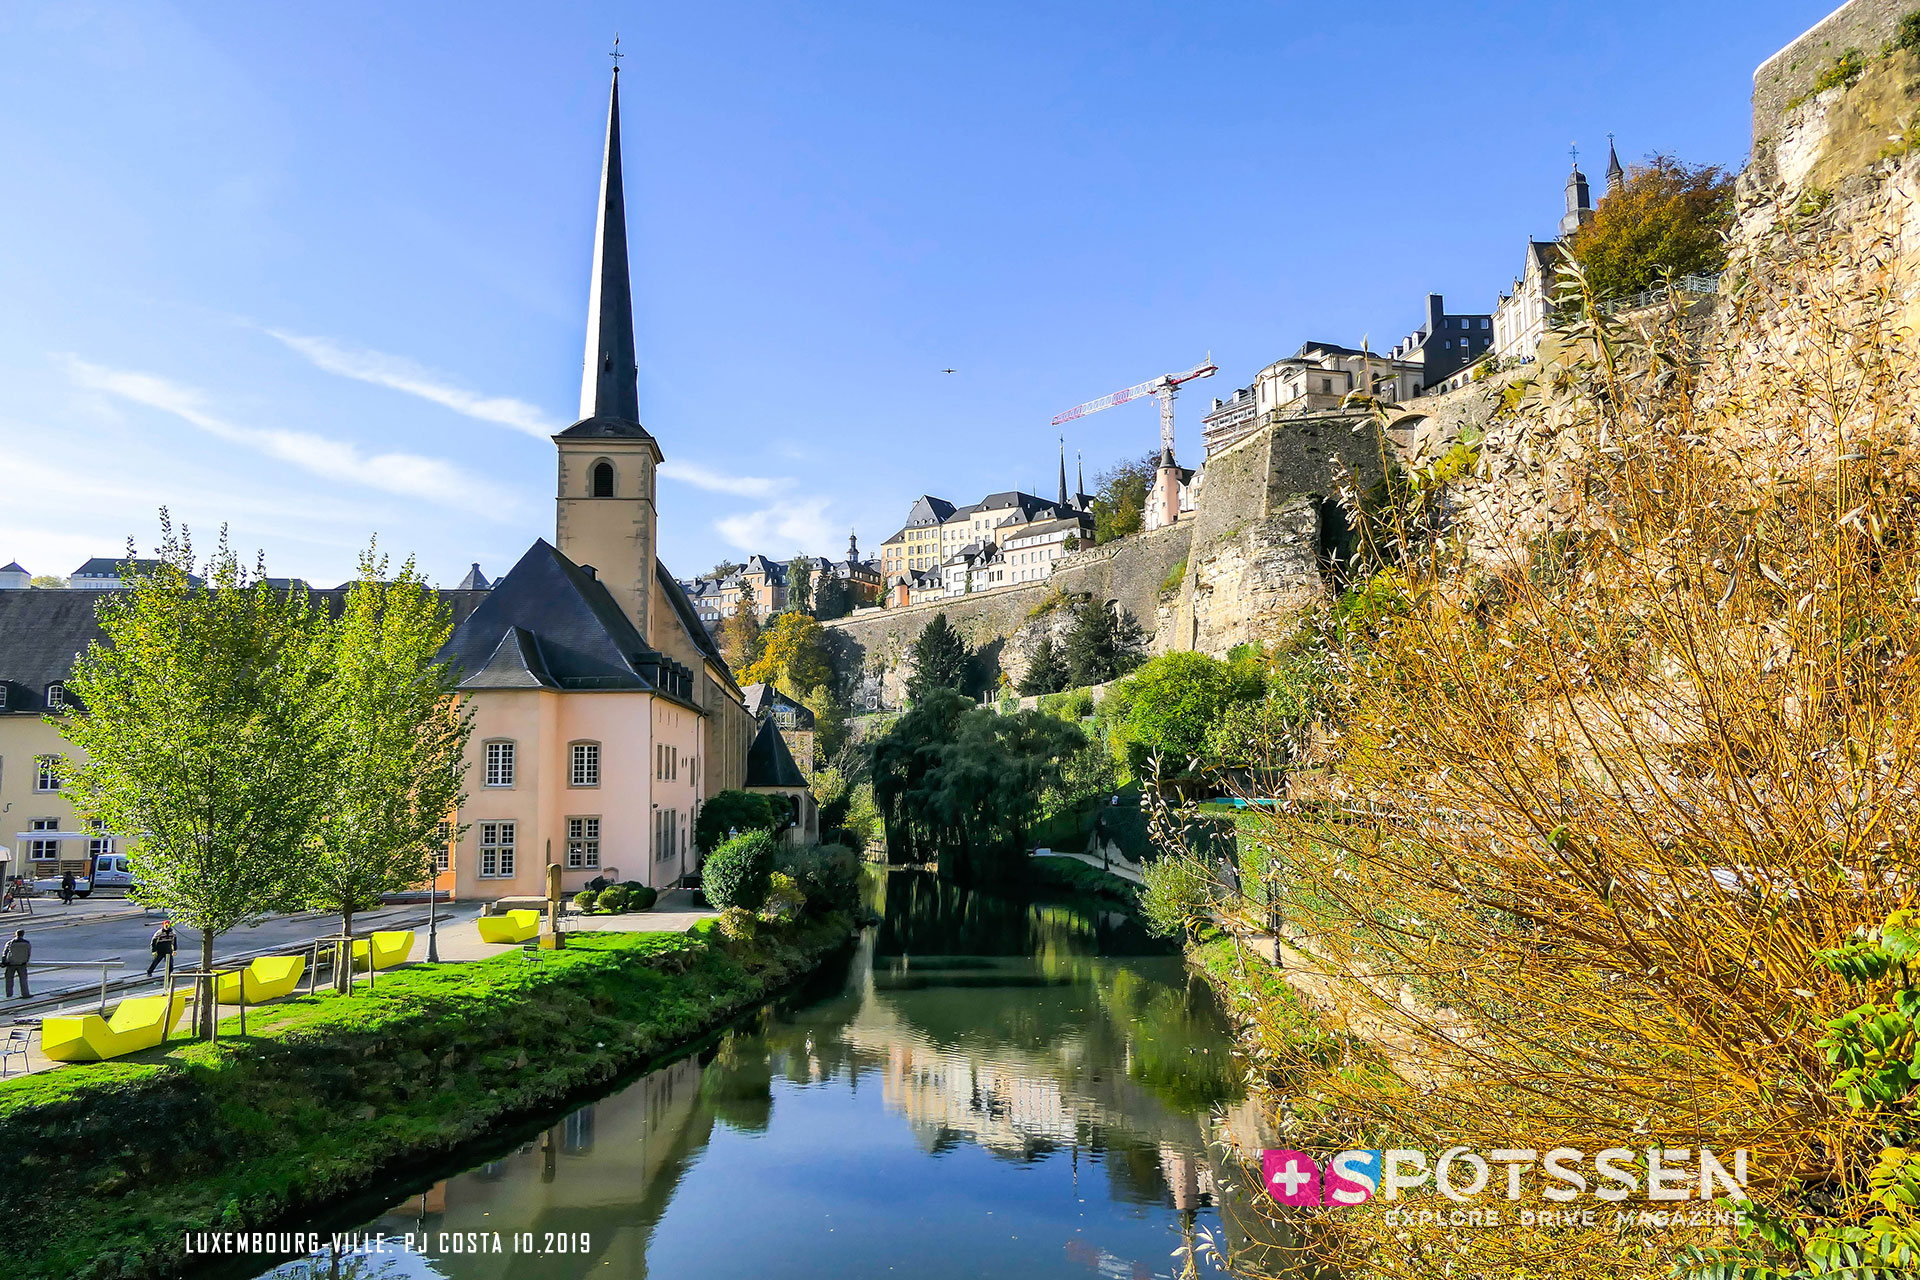 2019, luxembourg, ville